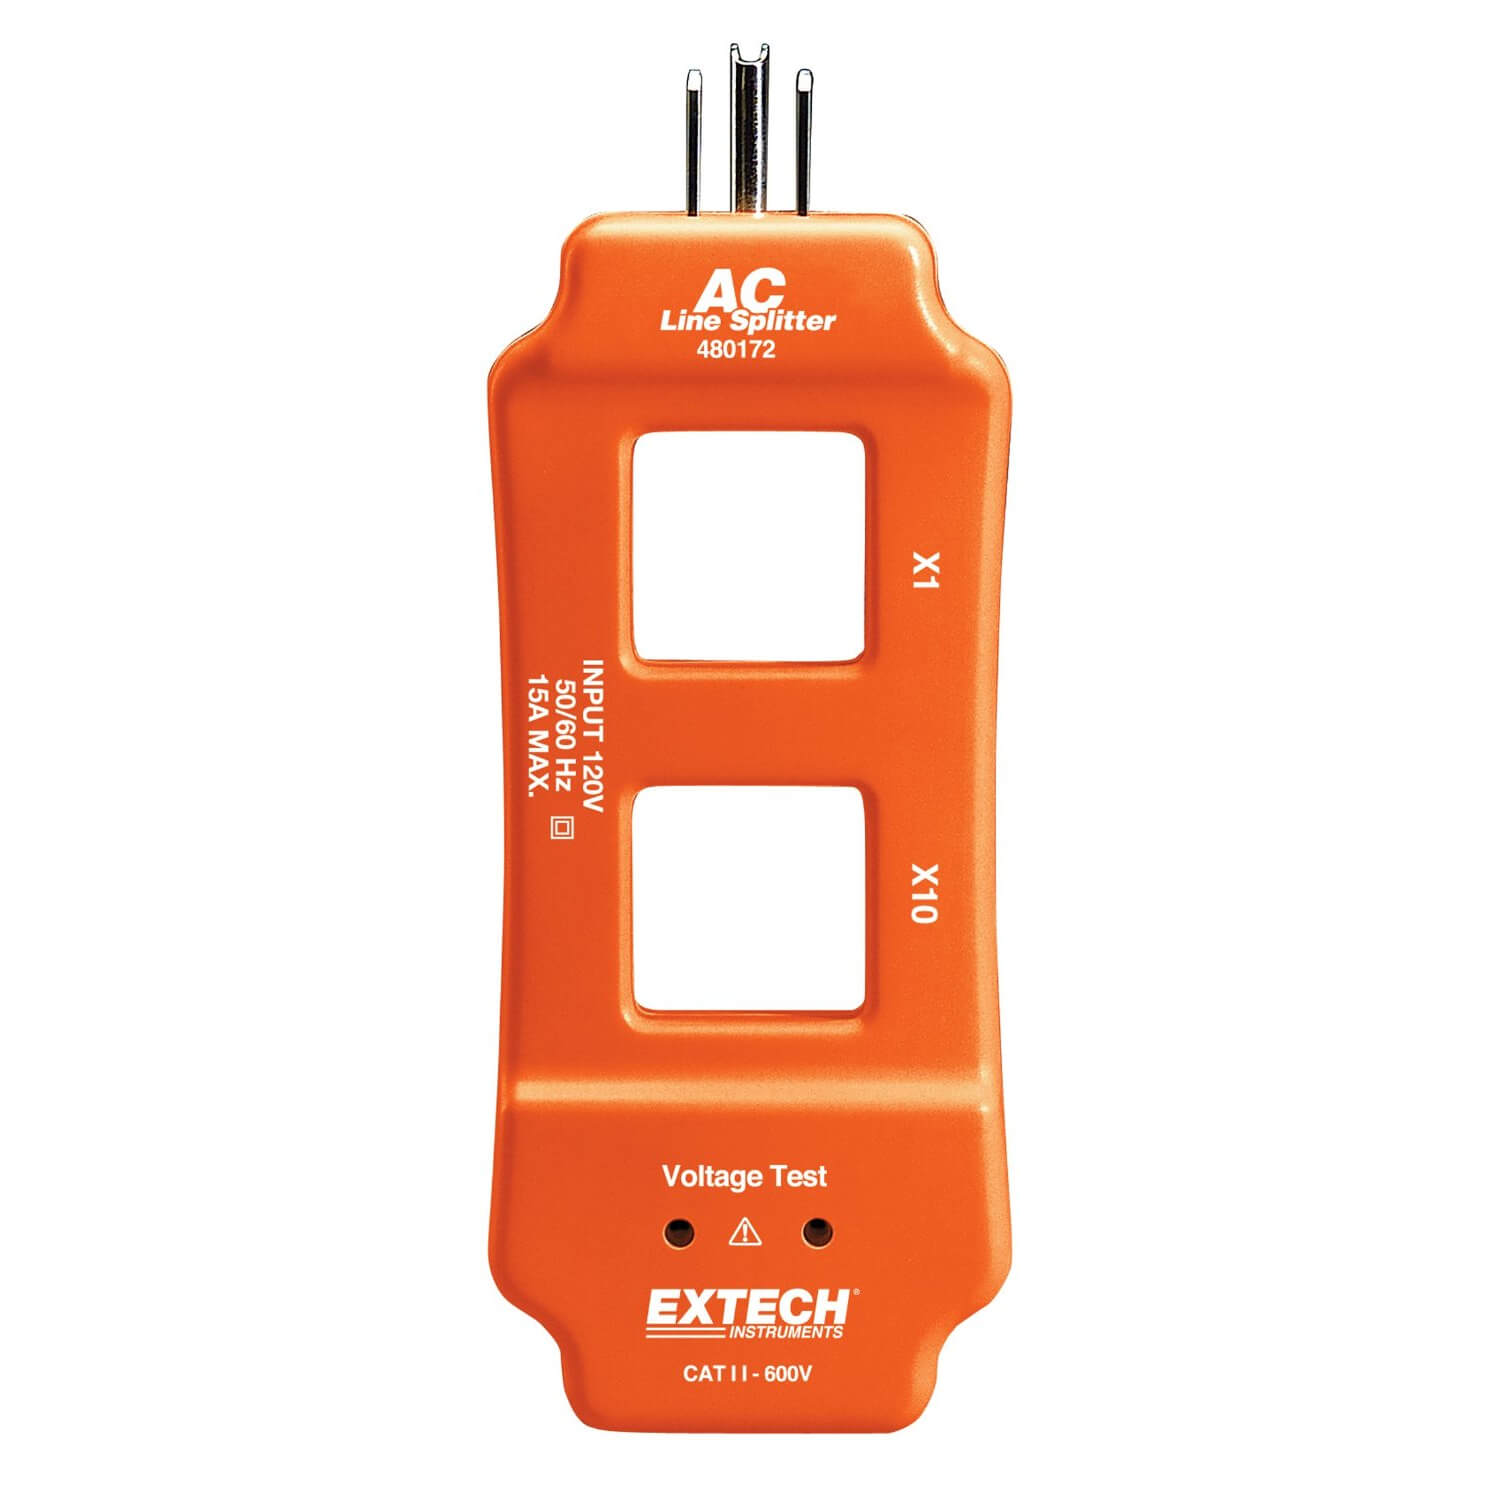 Extech 480172 AC Line Splitter for Extech Clamp Meters